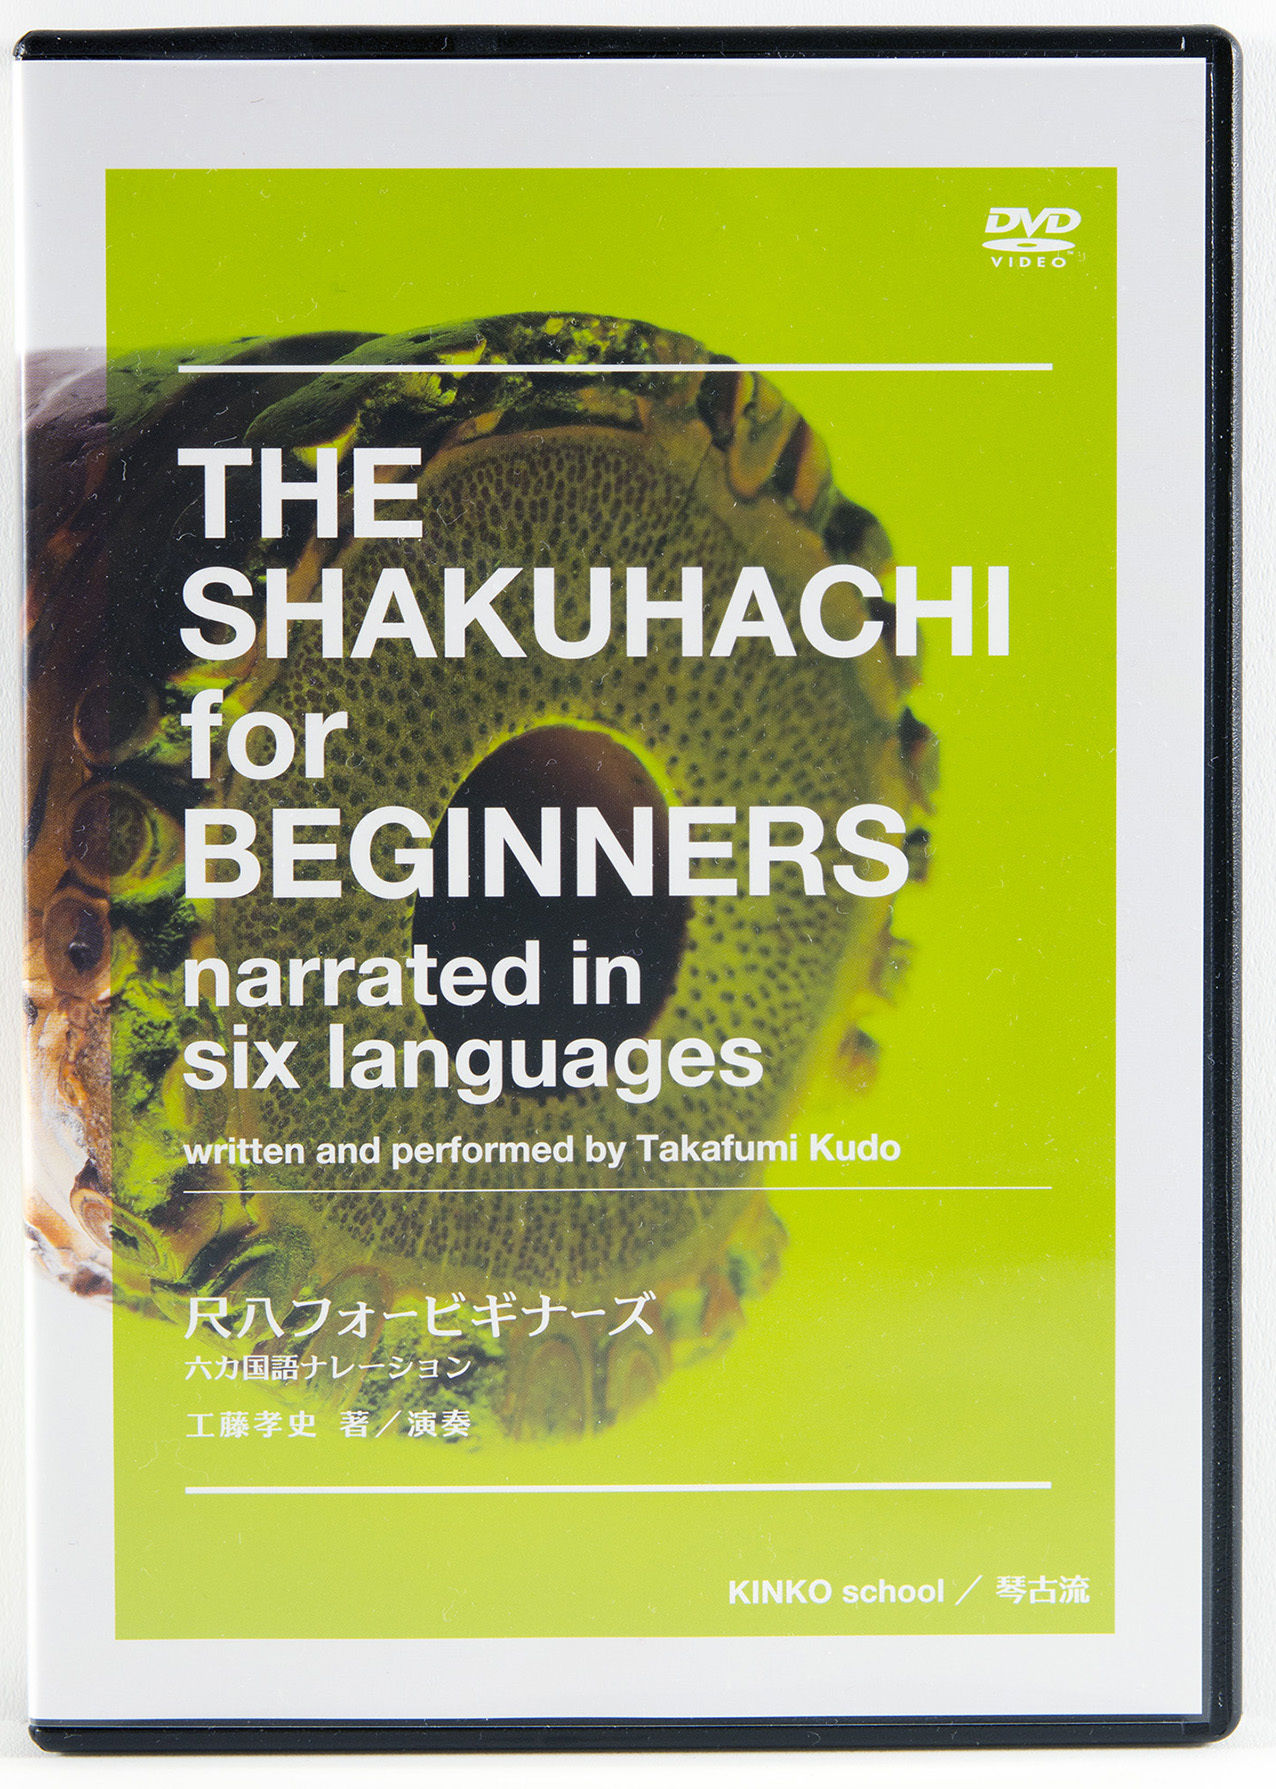 THE SHAKUHACHI for BEGINNERS narrated in six languages 尺八フォービギナーズ 六カ国語ナレーション(琴古流)DVD